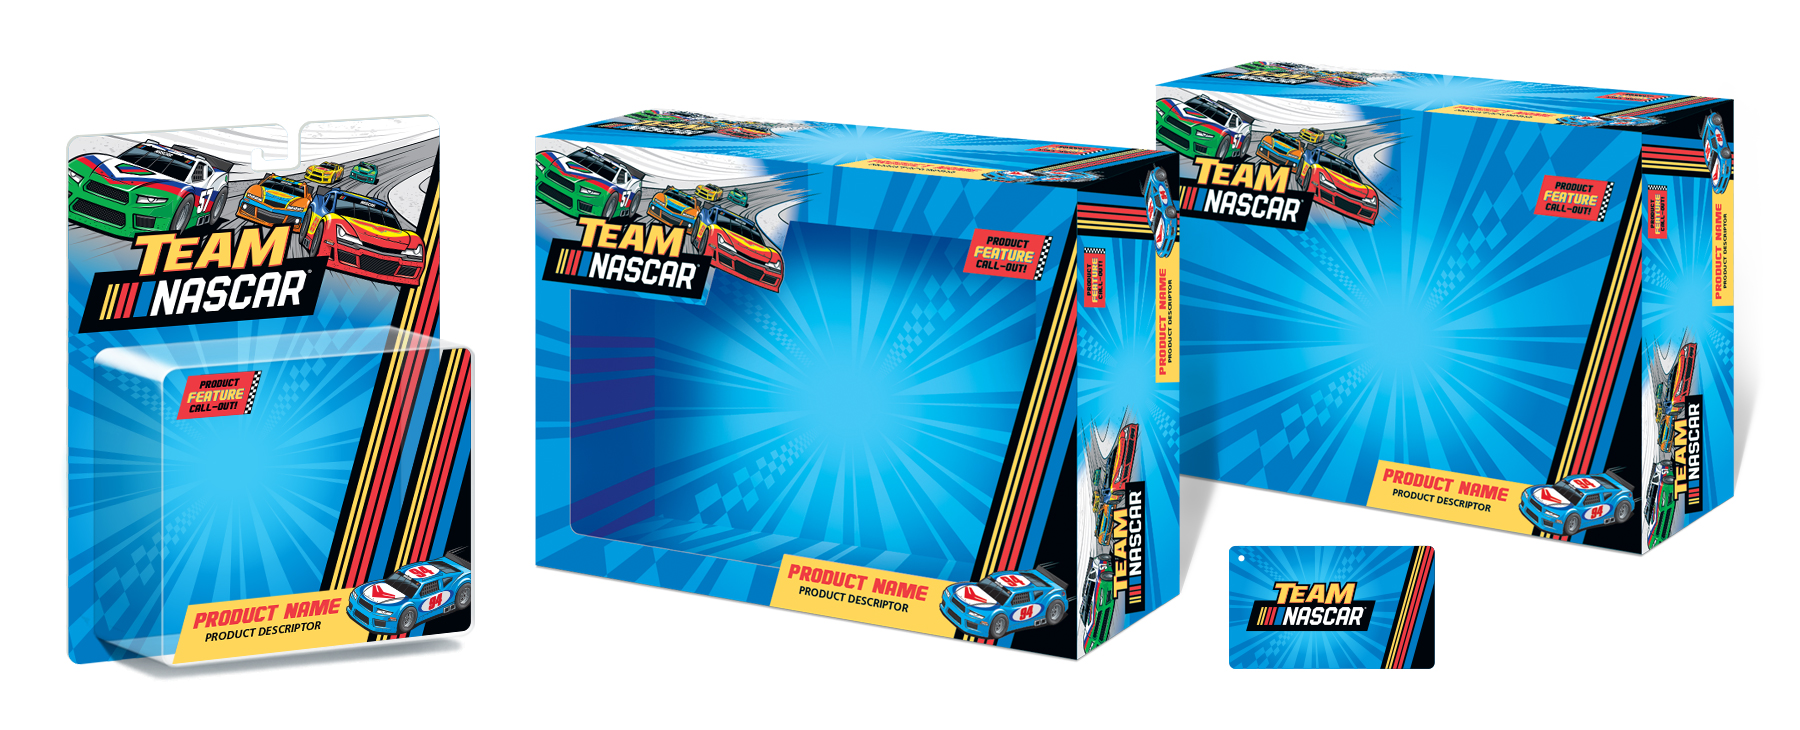 Team NASCAR - Packaging Design